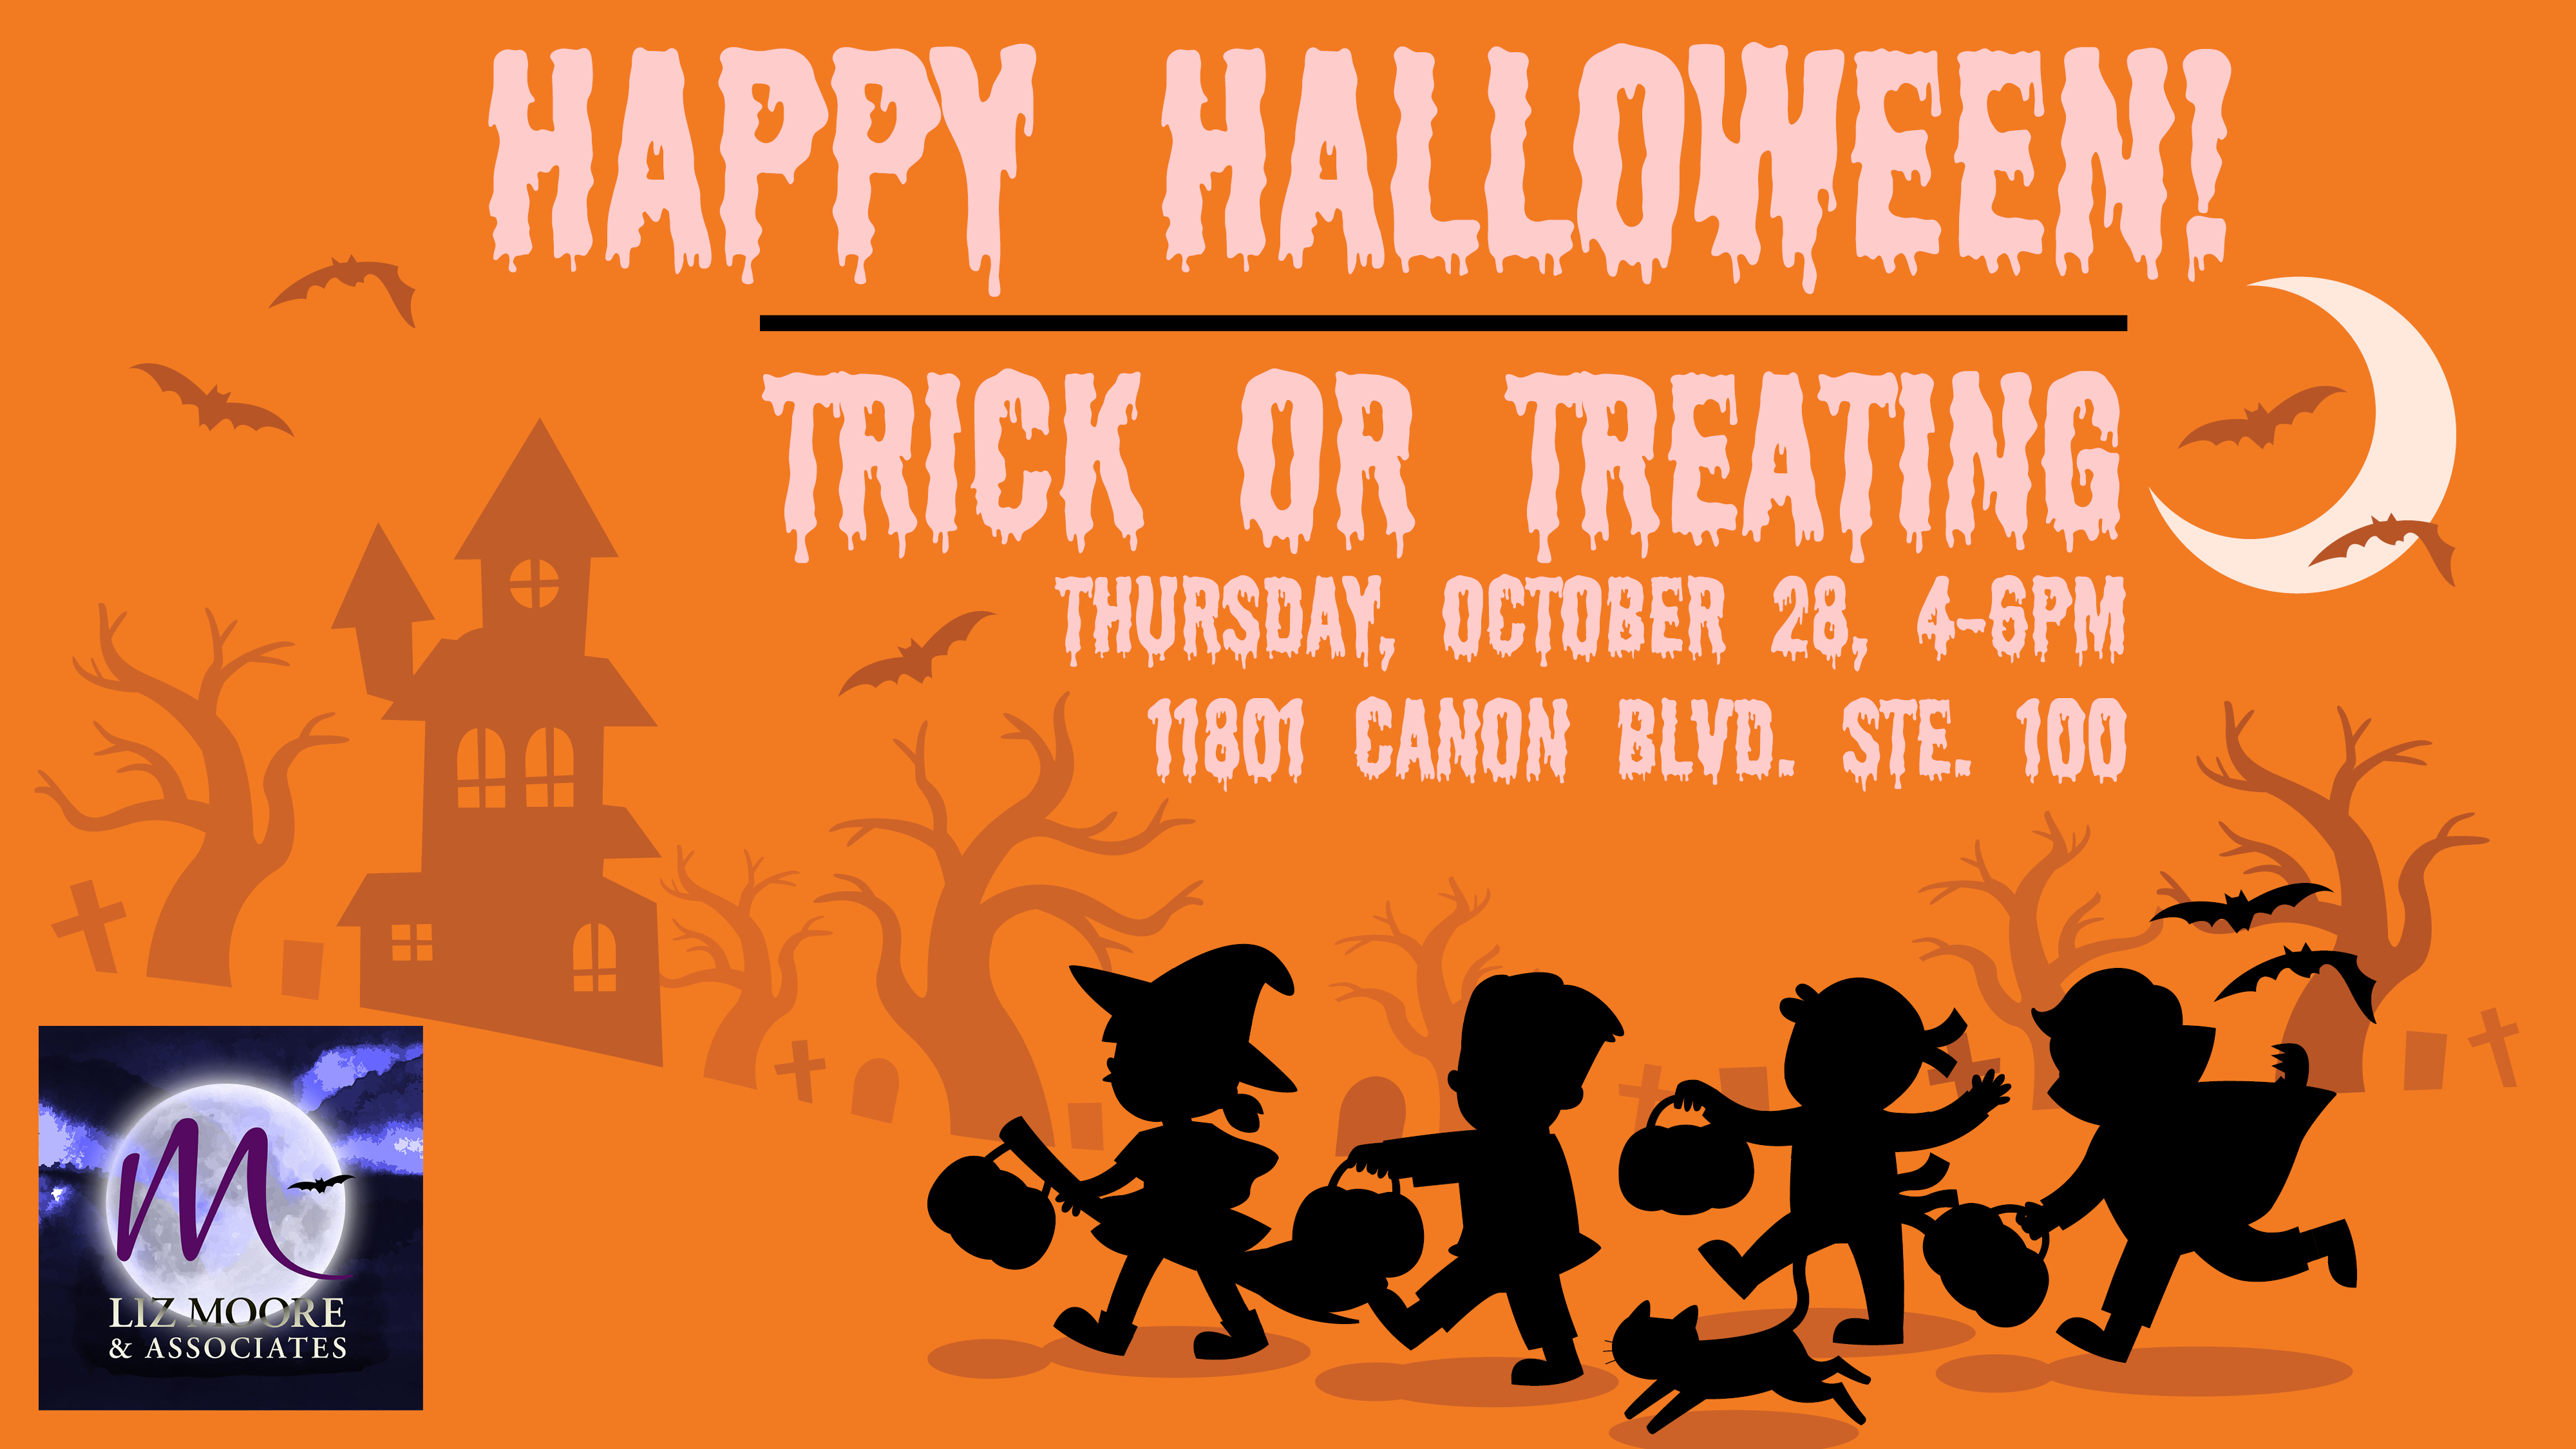 Trick or Treat at our Newport News Office